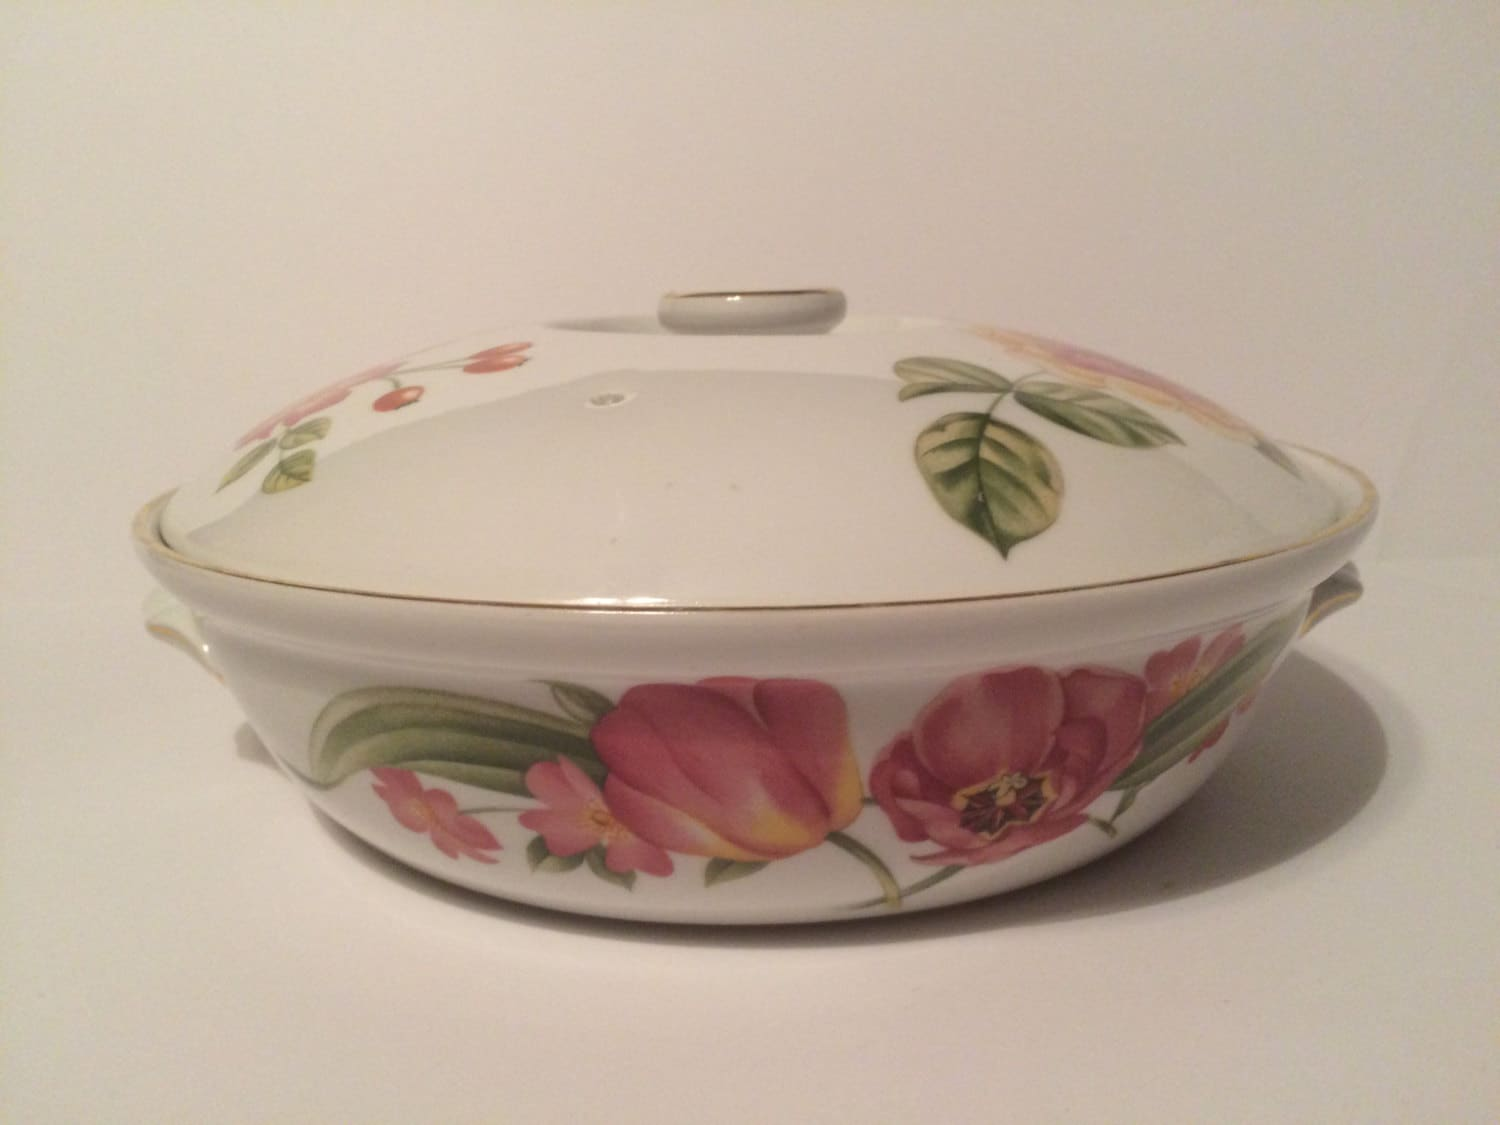 Vintage Floral Covered Casserole Dish By Pershore, Royal Worcester Fine  Porcelain 1976